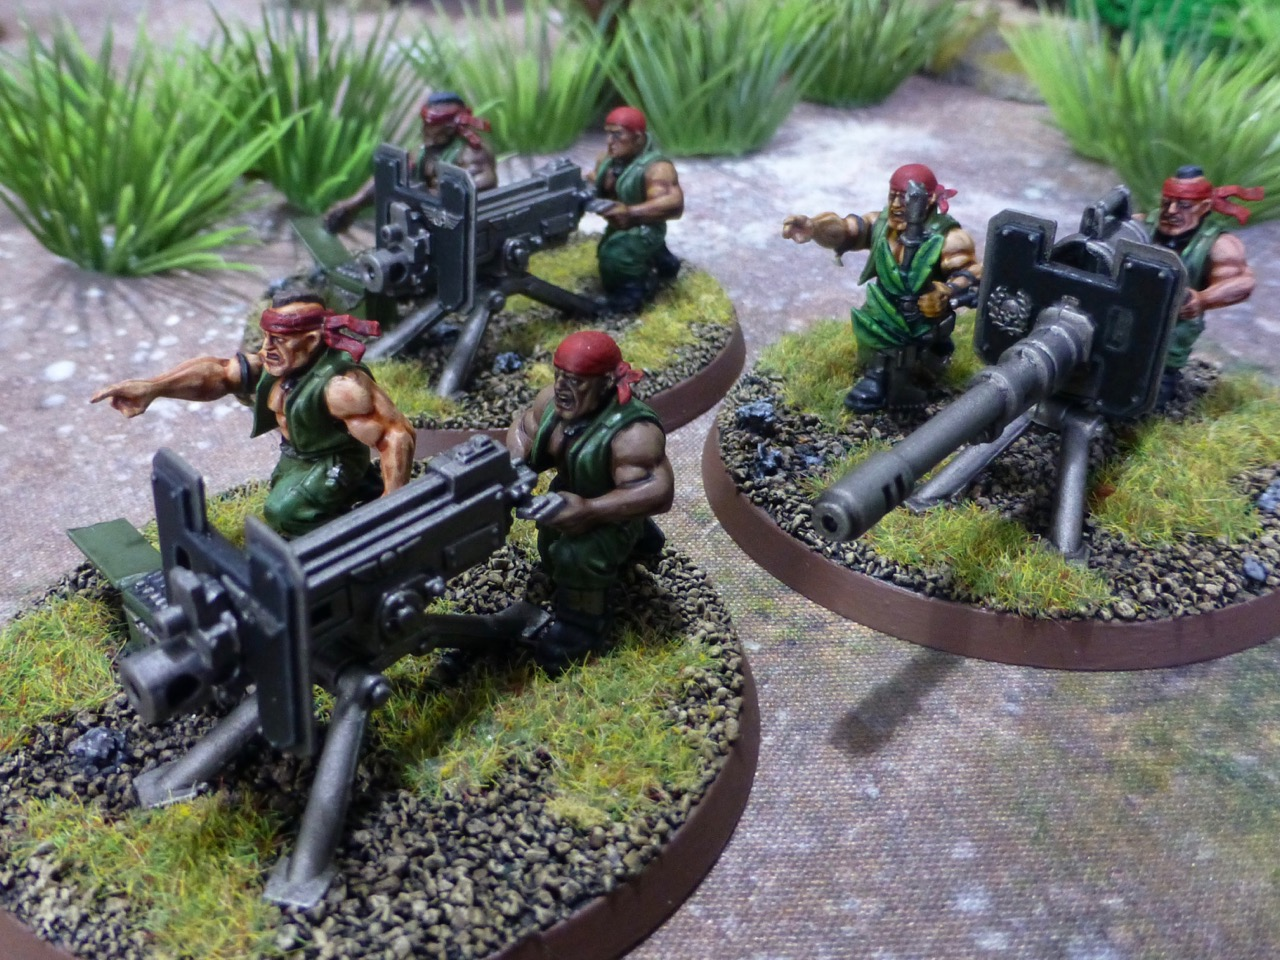 Three teams equipped with heavy guns on tripods